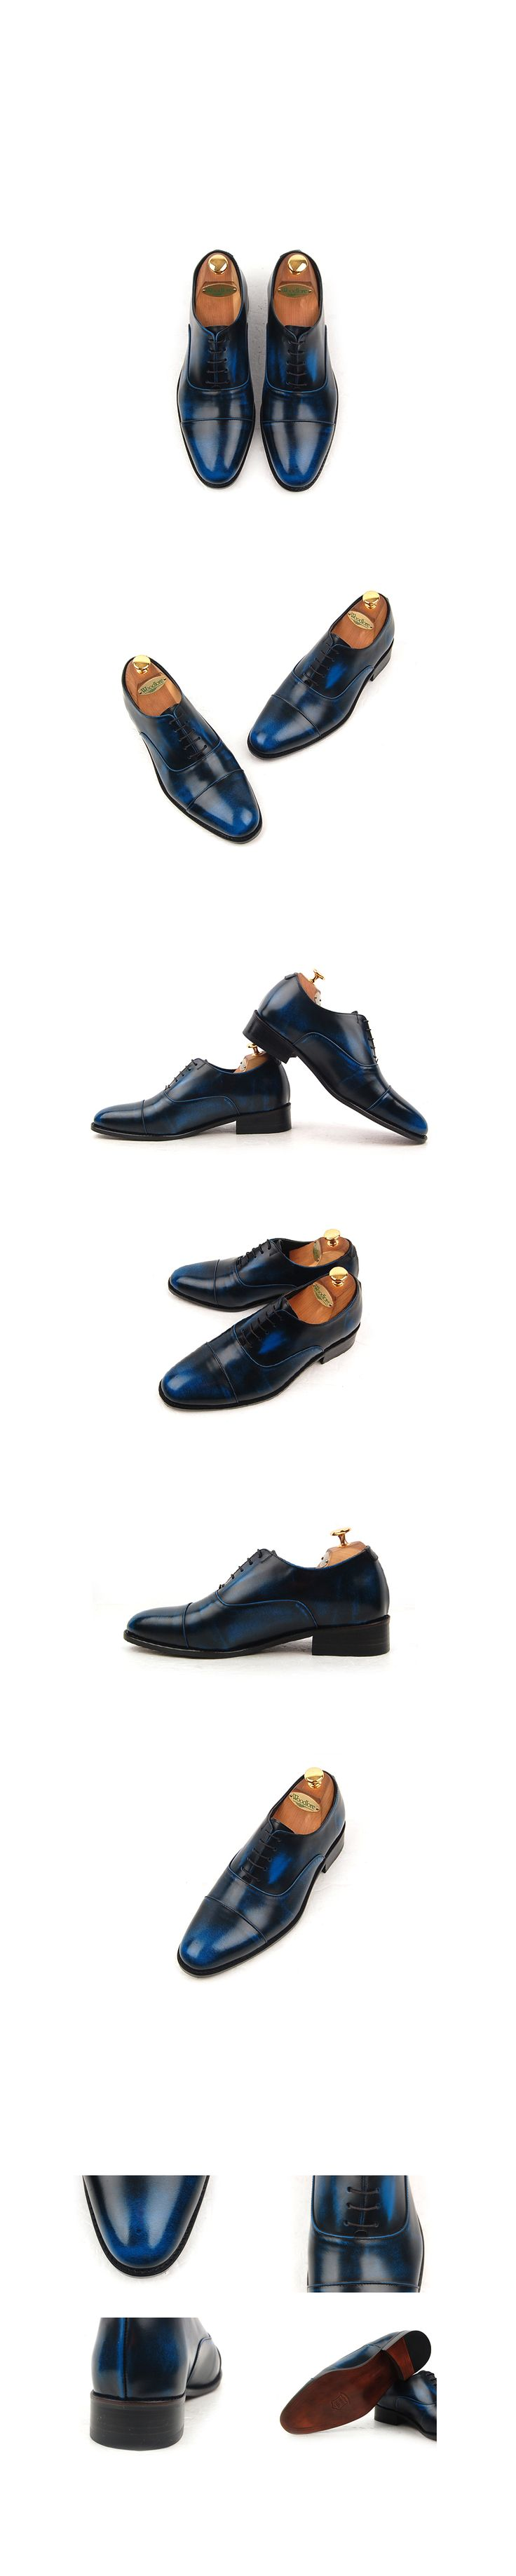 H3THECLASSIC loafer shoes man fashion #h3theclassicl#handmadeshoes#shoes#madeinkorea#instashoes#classic#menshoes#oxford#h3theclassic#fashion#custom#handmade#mensshoes#instashoe#손신발#에이치쓰리더클래식#수제화#남성수제화#남자수제화#커스텀#남자구두#핸드메이드#신스타그램#맞춤#클리퍼#남성클리퍼#남자로퍼#맞춤클리퍼#fashionaddict#dailystyle#instafashion#ootd#ootdmagazine#lookbook#streetchic#데일리룩#OX-1001BU